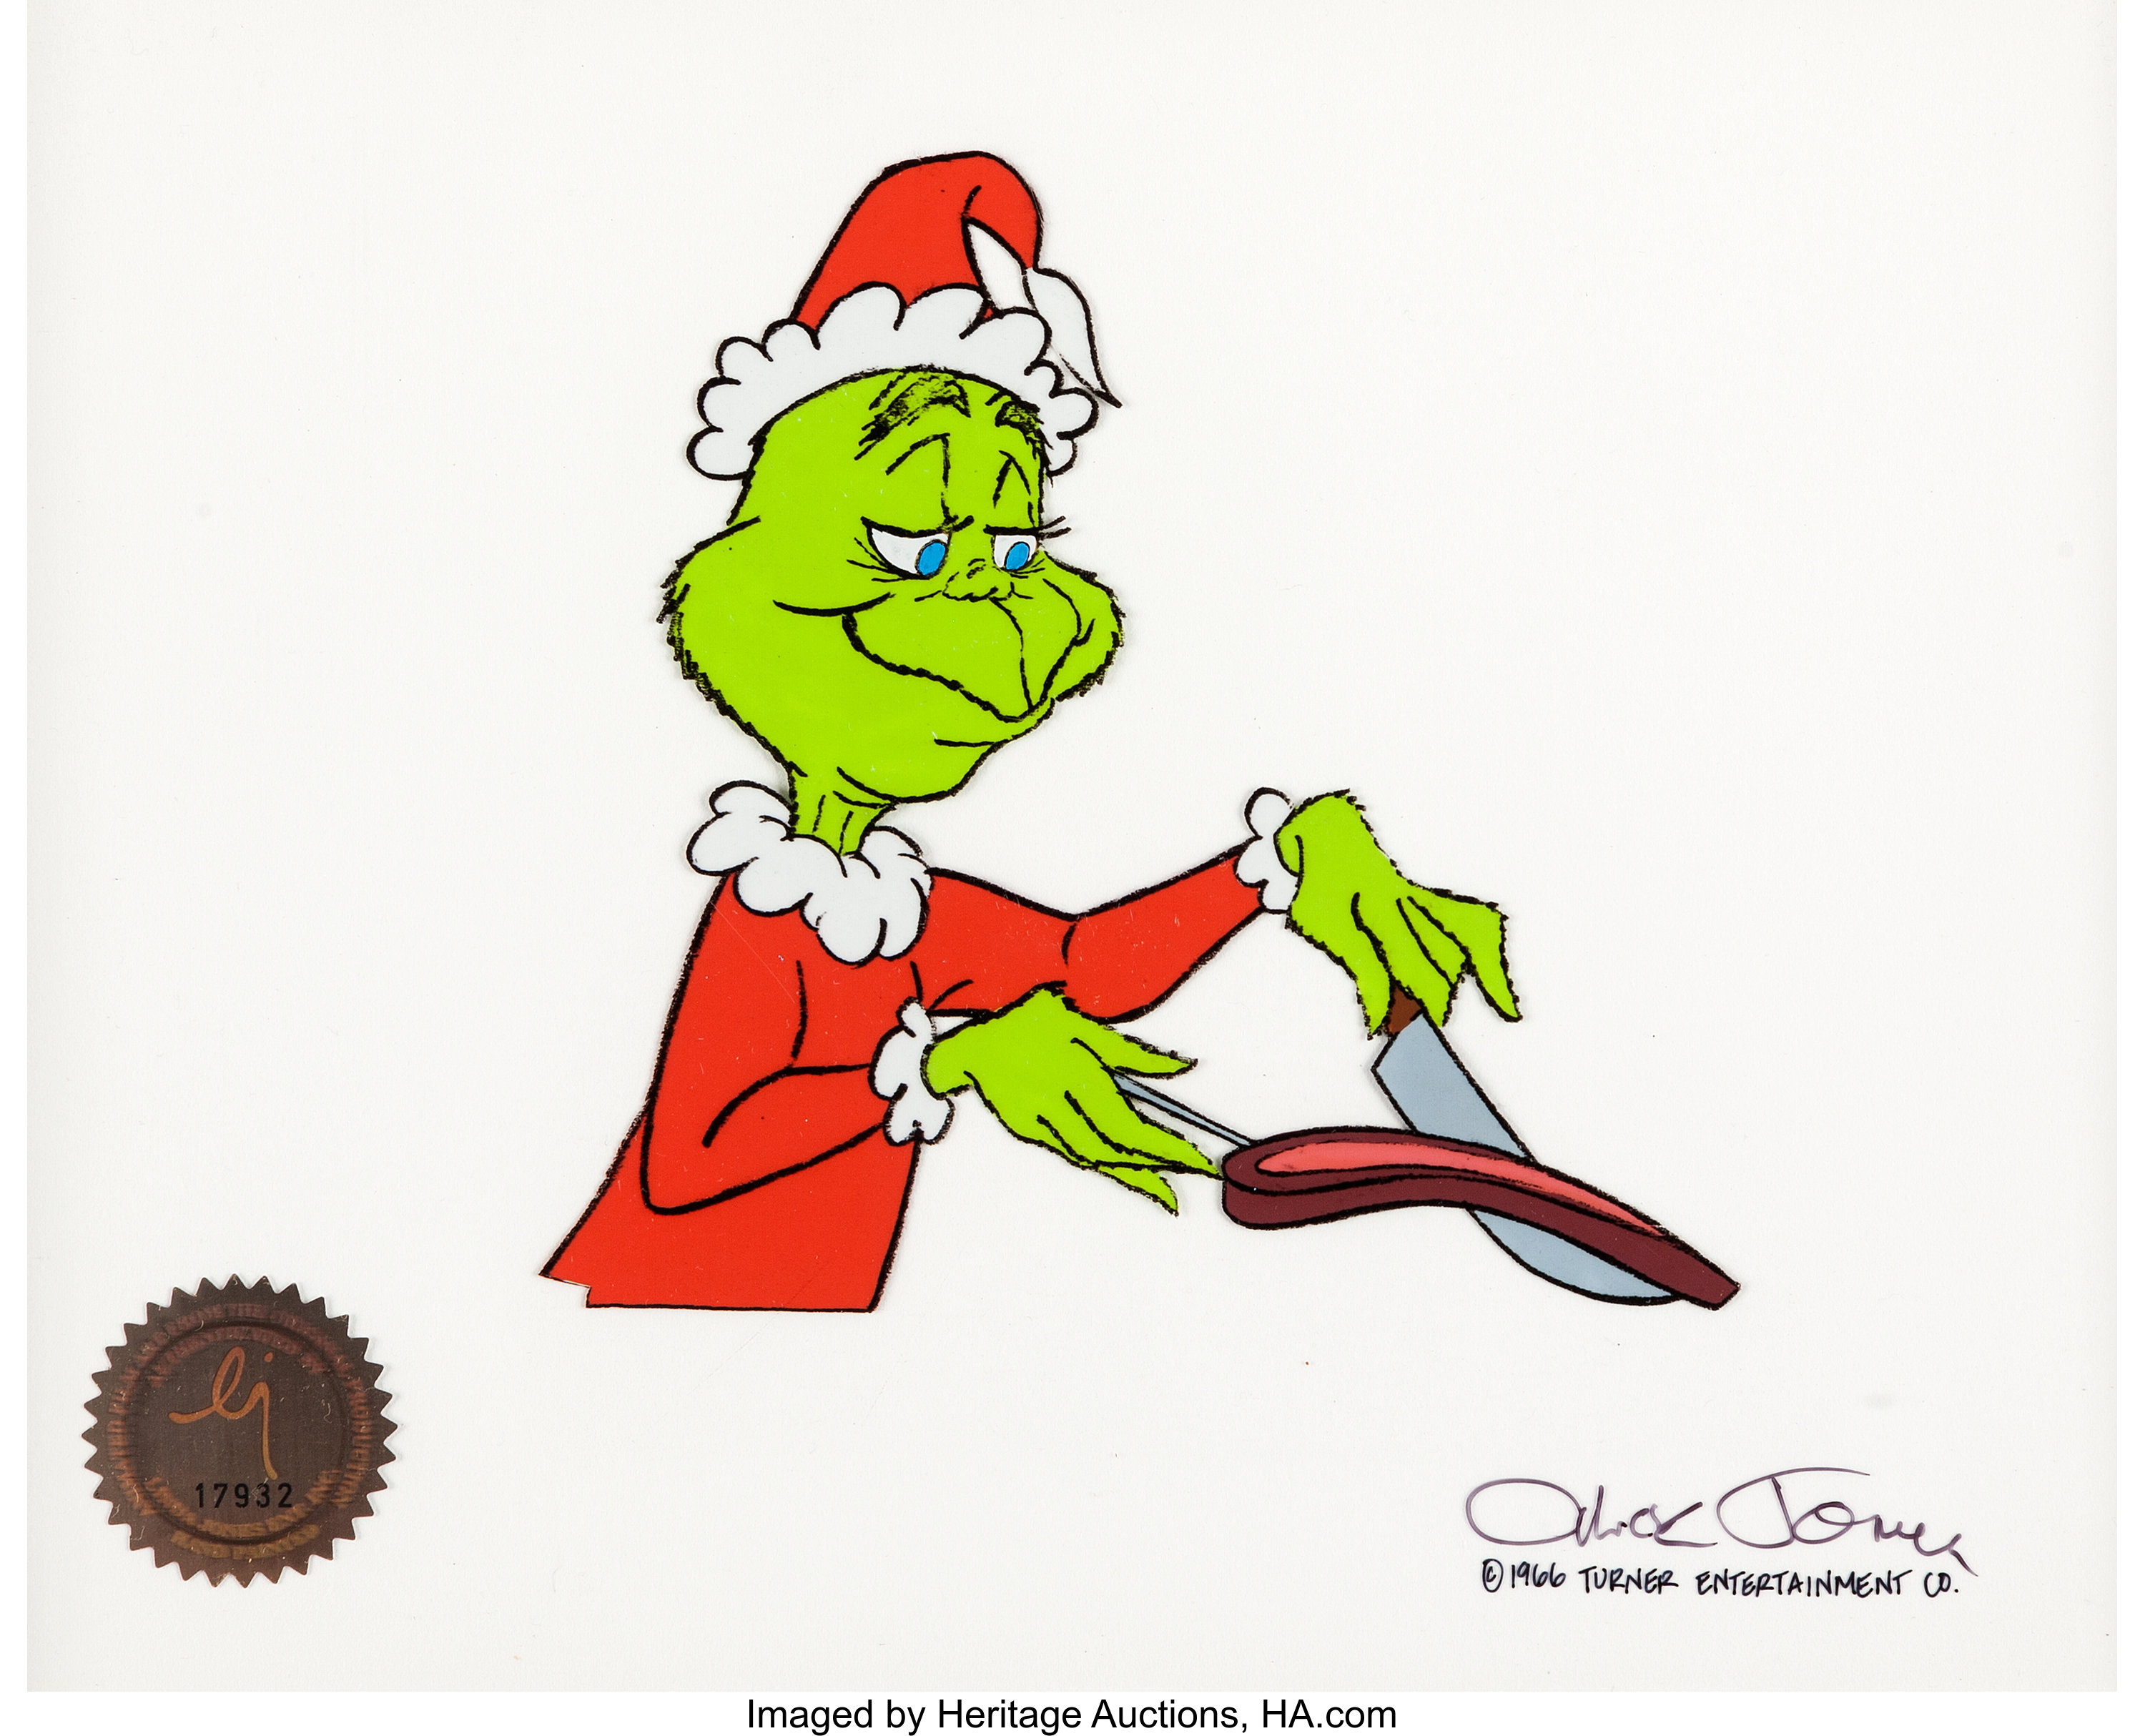 Dr. Seuss' How the Grinch Stole